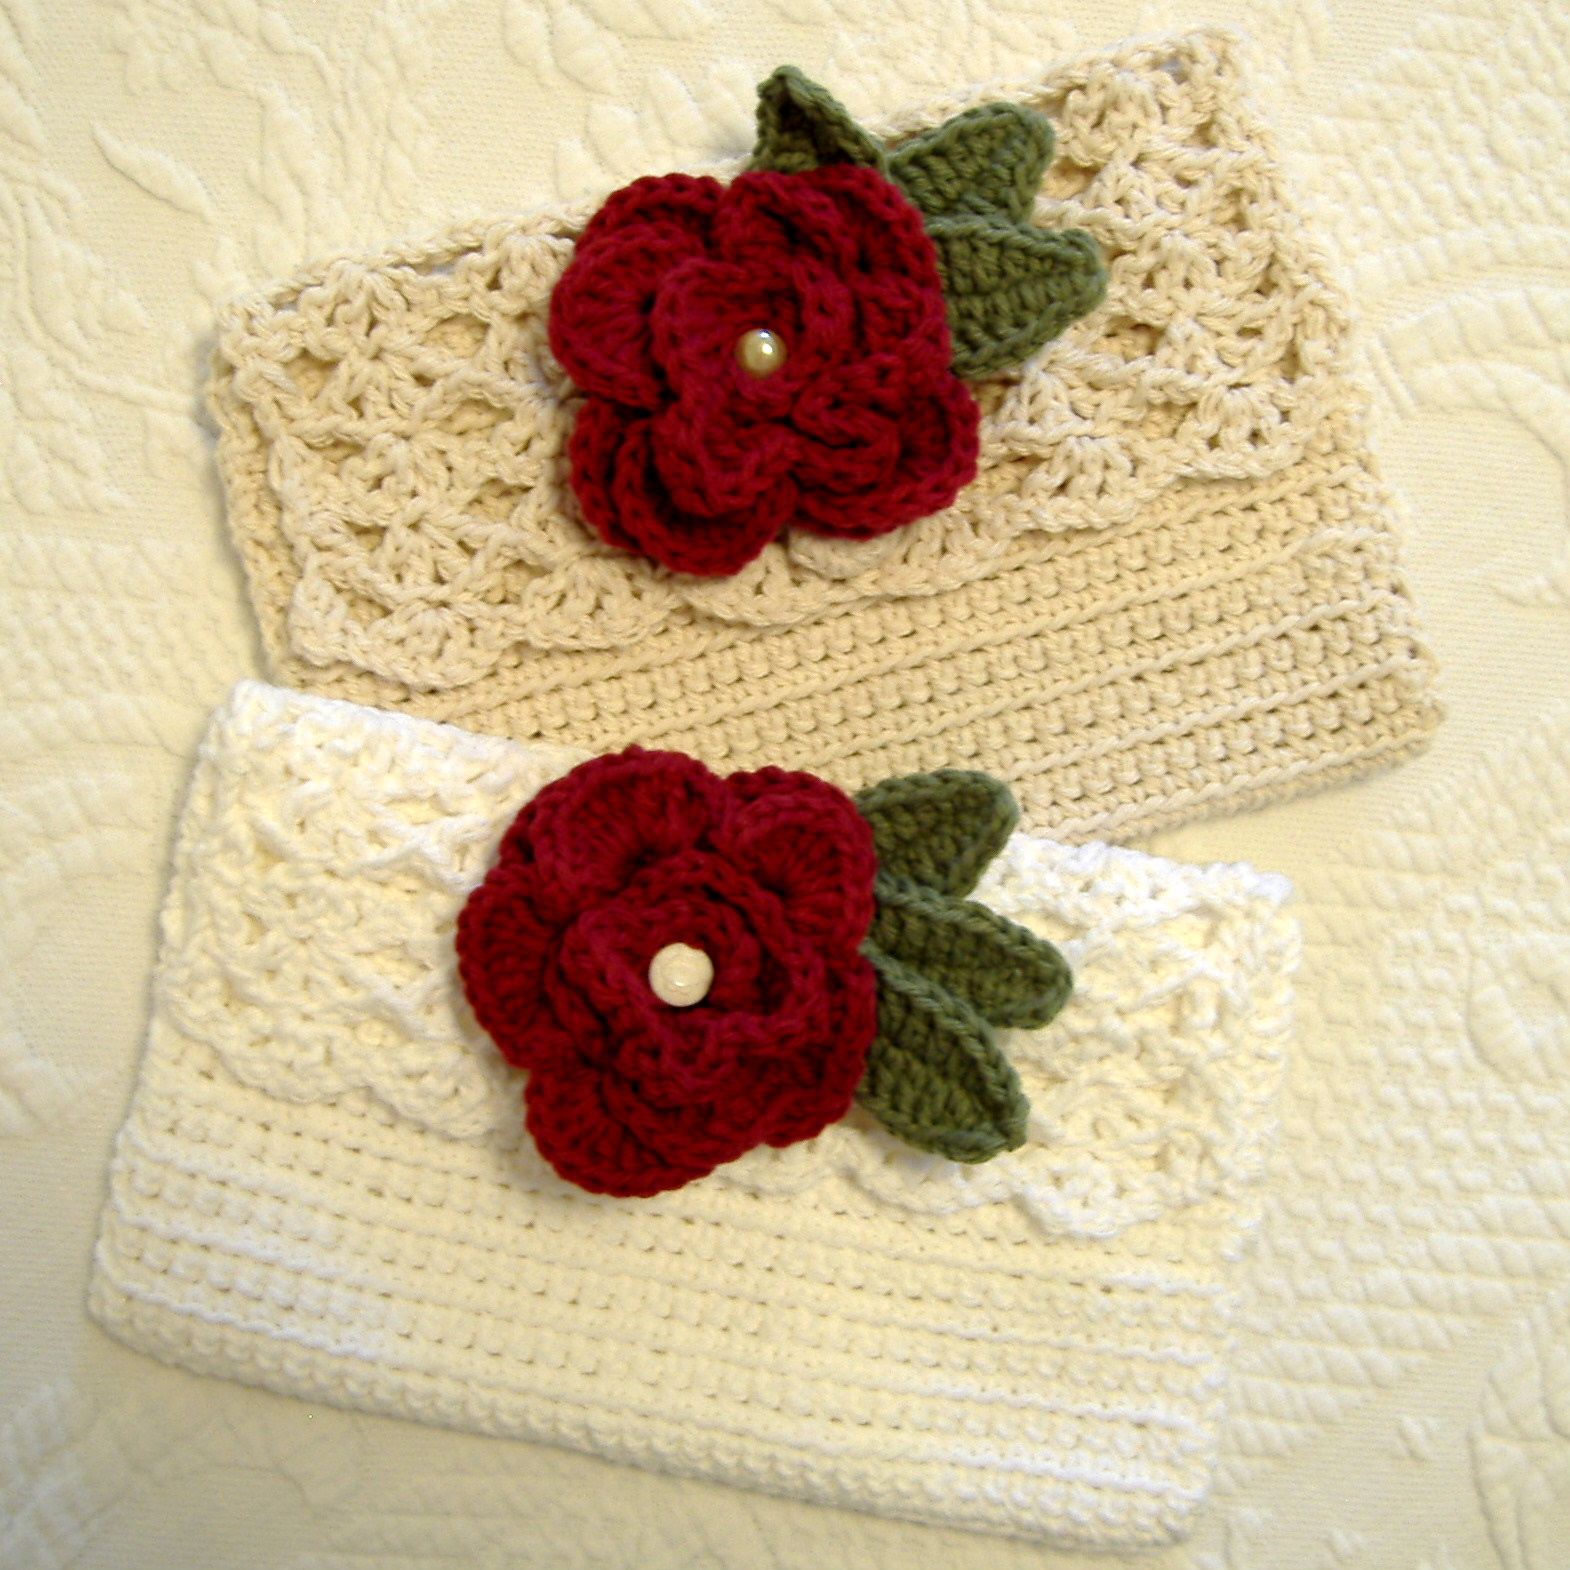 CROCHET PATTERNS PURSES FREE PATTERNS